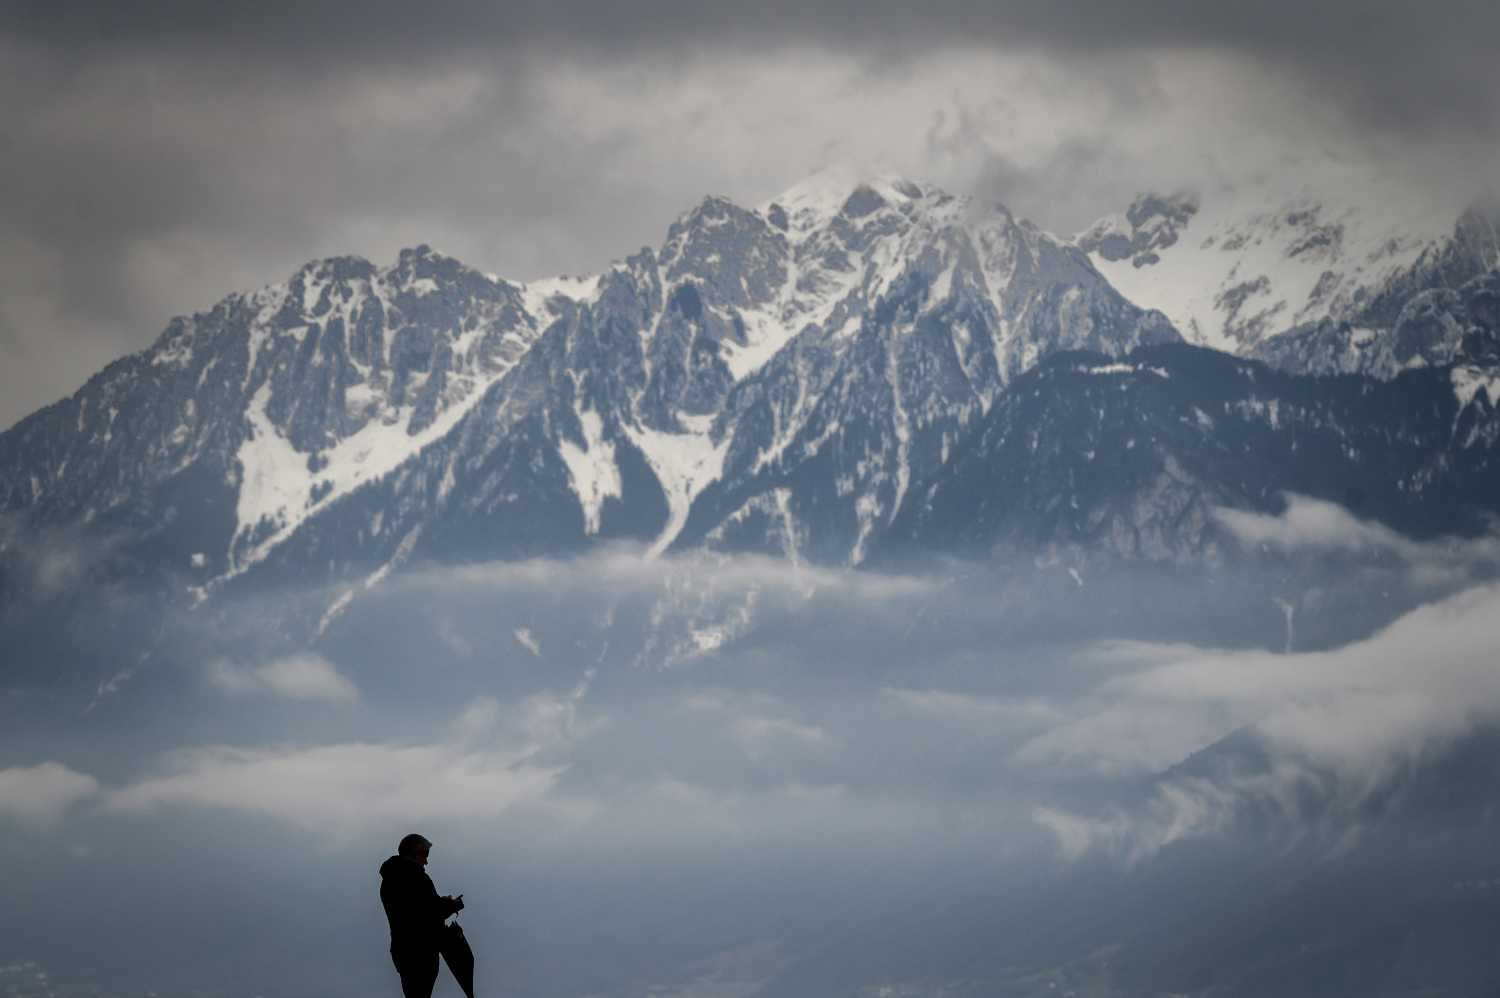 Warm, wacky and wild weather predicted for Switzerland this weekend